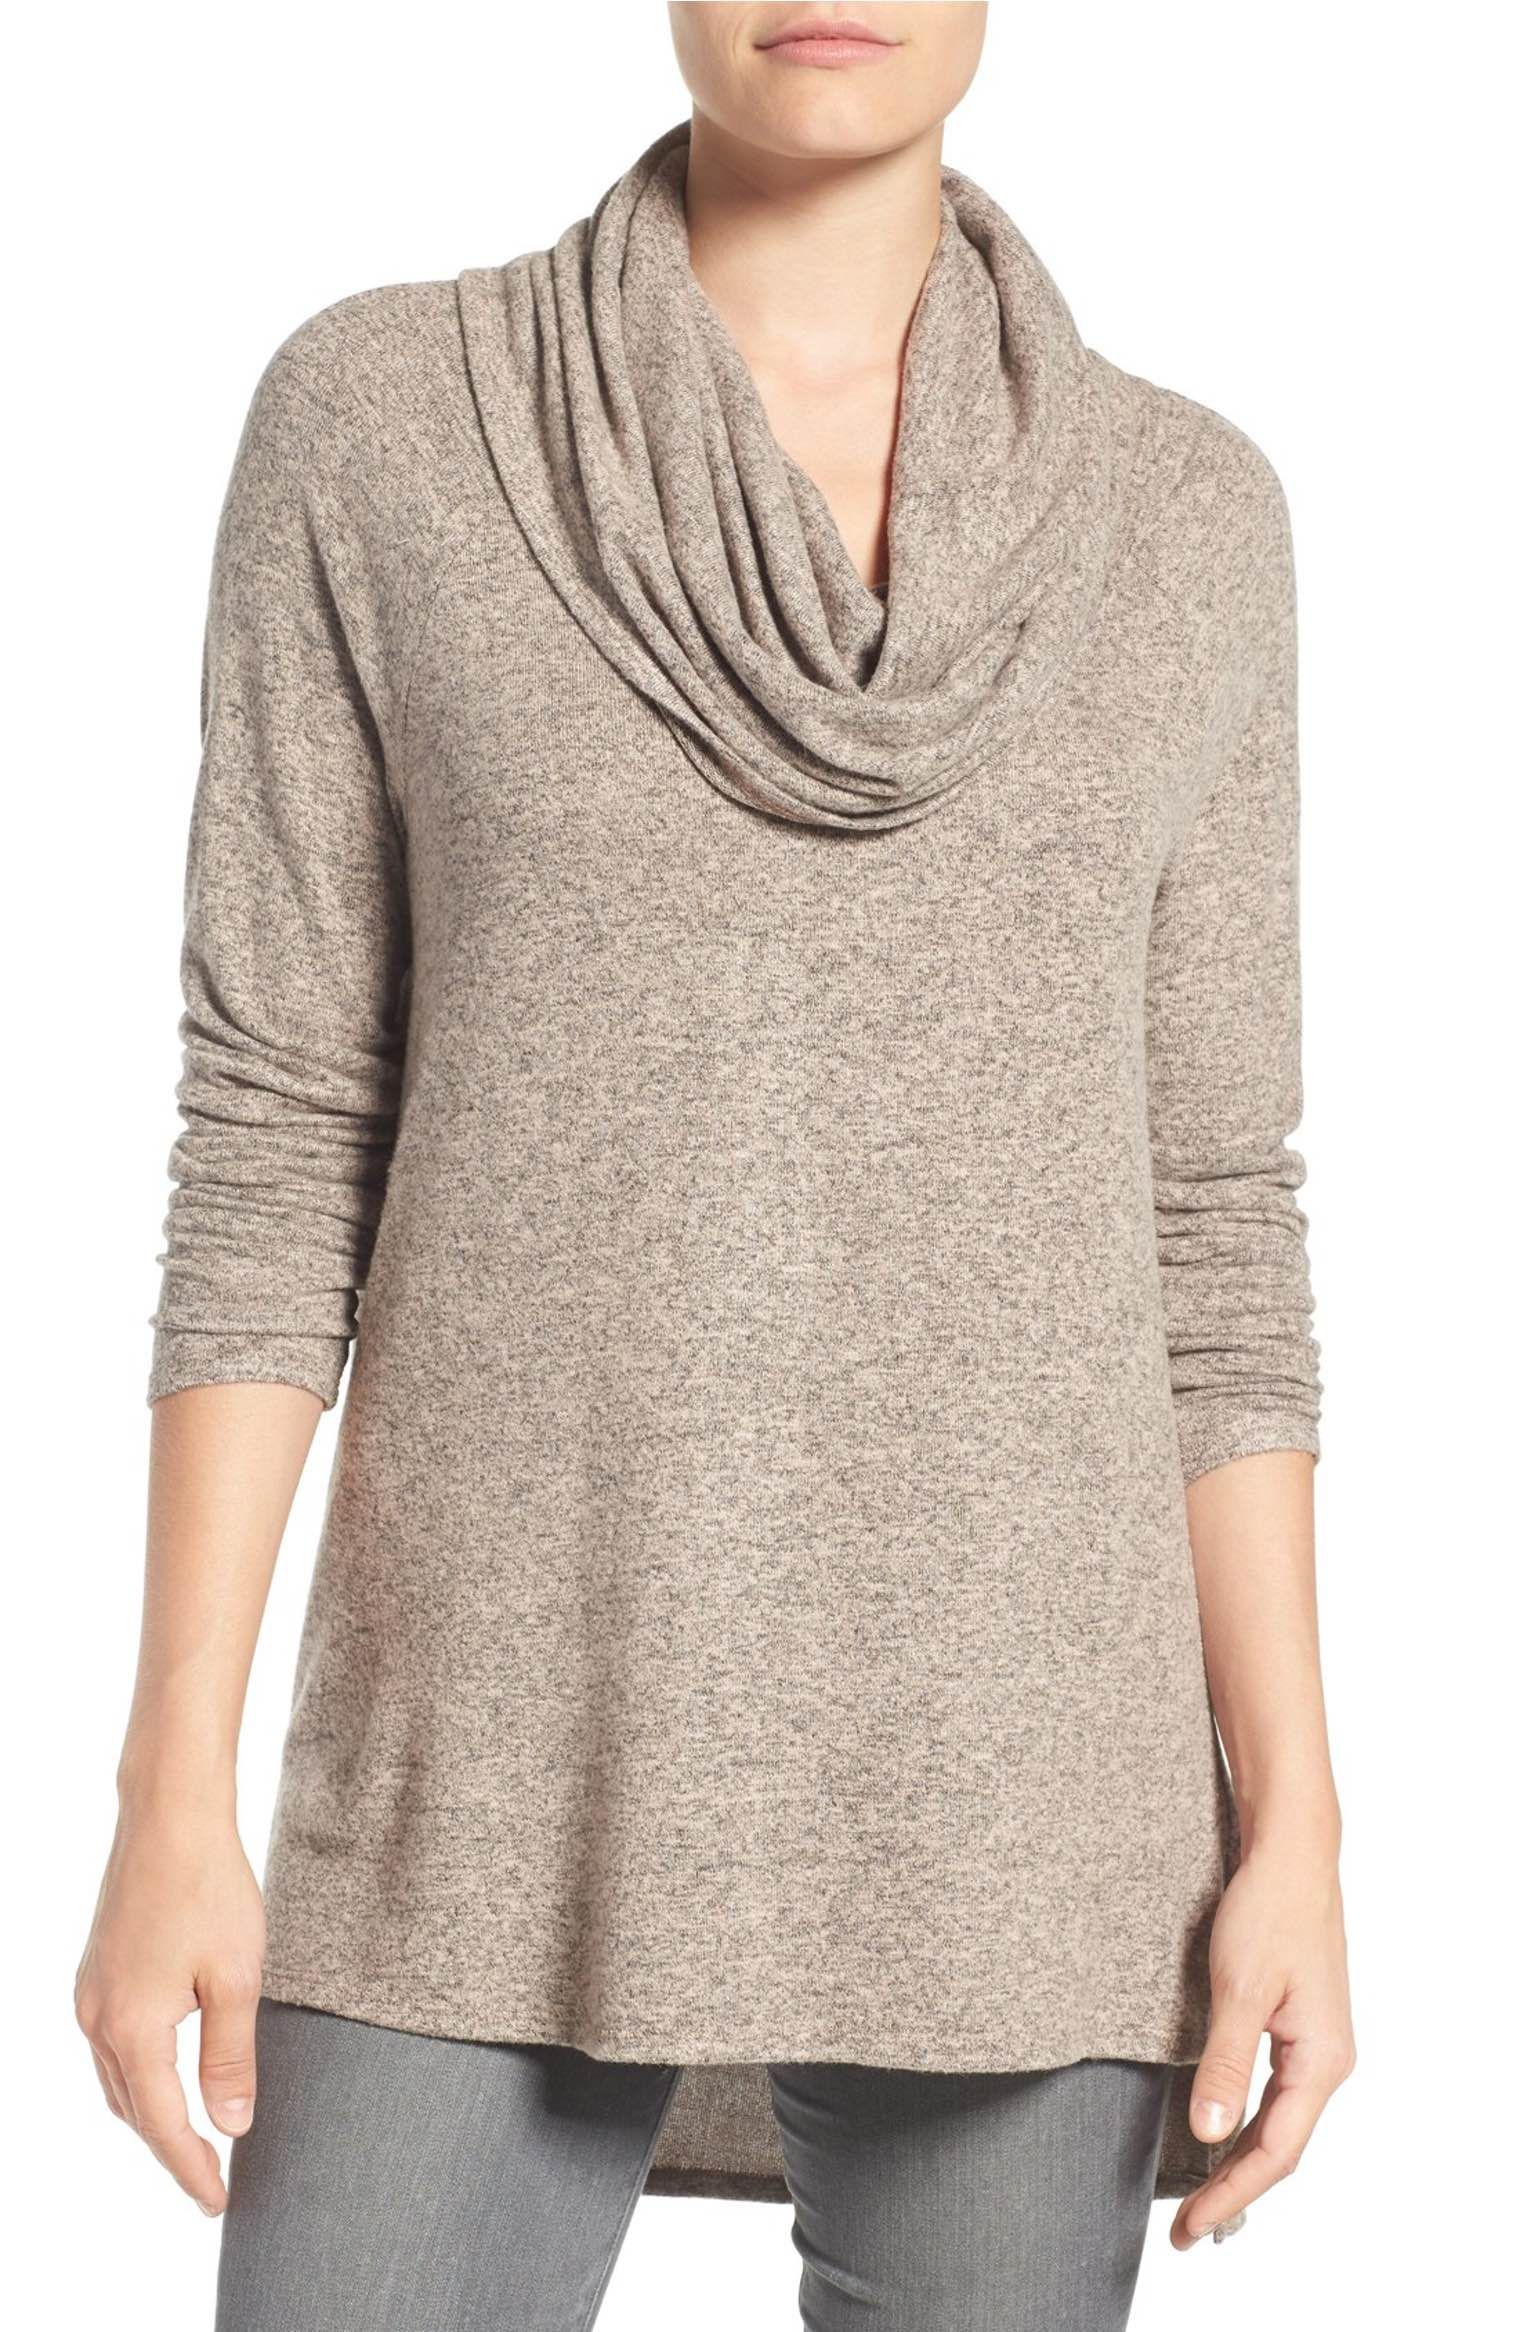 Convertible Neckline Cozy Fleece Tunic | Convertible, Neckline and ...